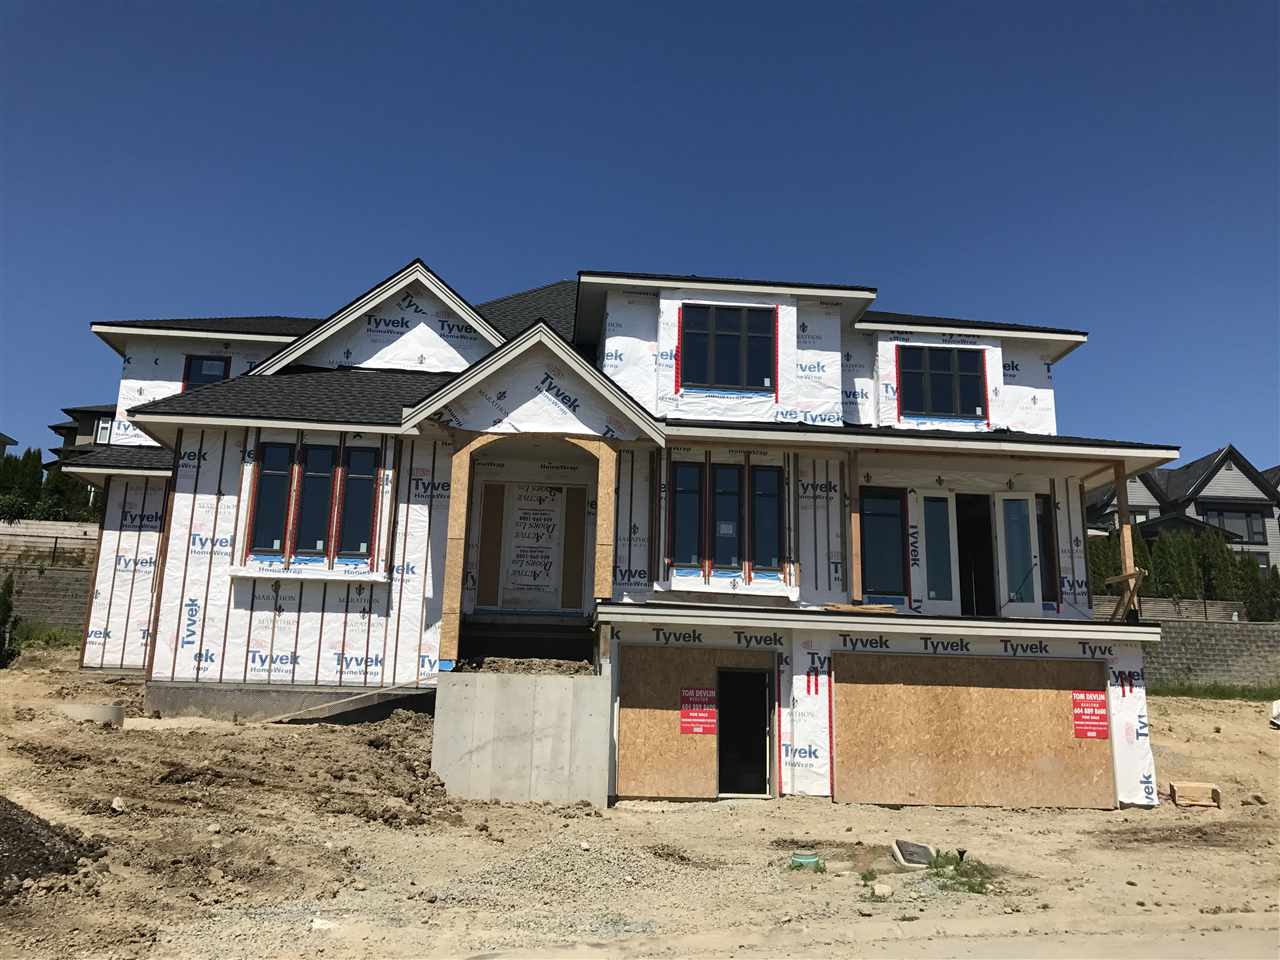 Brand New Home in West Cloverdale by Marathon Homes situated on a super quiet cul-de-sac. Executive custom built-west coast style by local builder. Features: 8 bdrm, 8bthrm, 6971 SF home on 12,056 SF lot,  Excellent Open floor plan, functional lay-out. Triple car garage + 4 cars parking. Call today and this fall you could be calling this home. House is currently under construction and time to pick your colors.